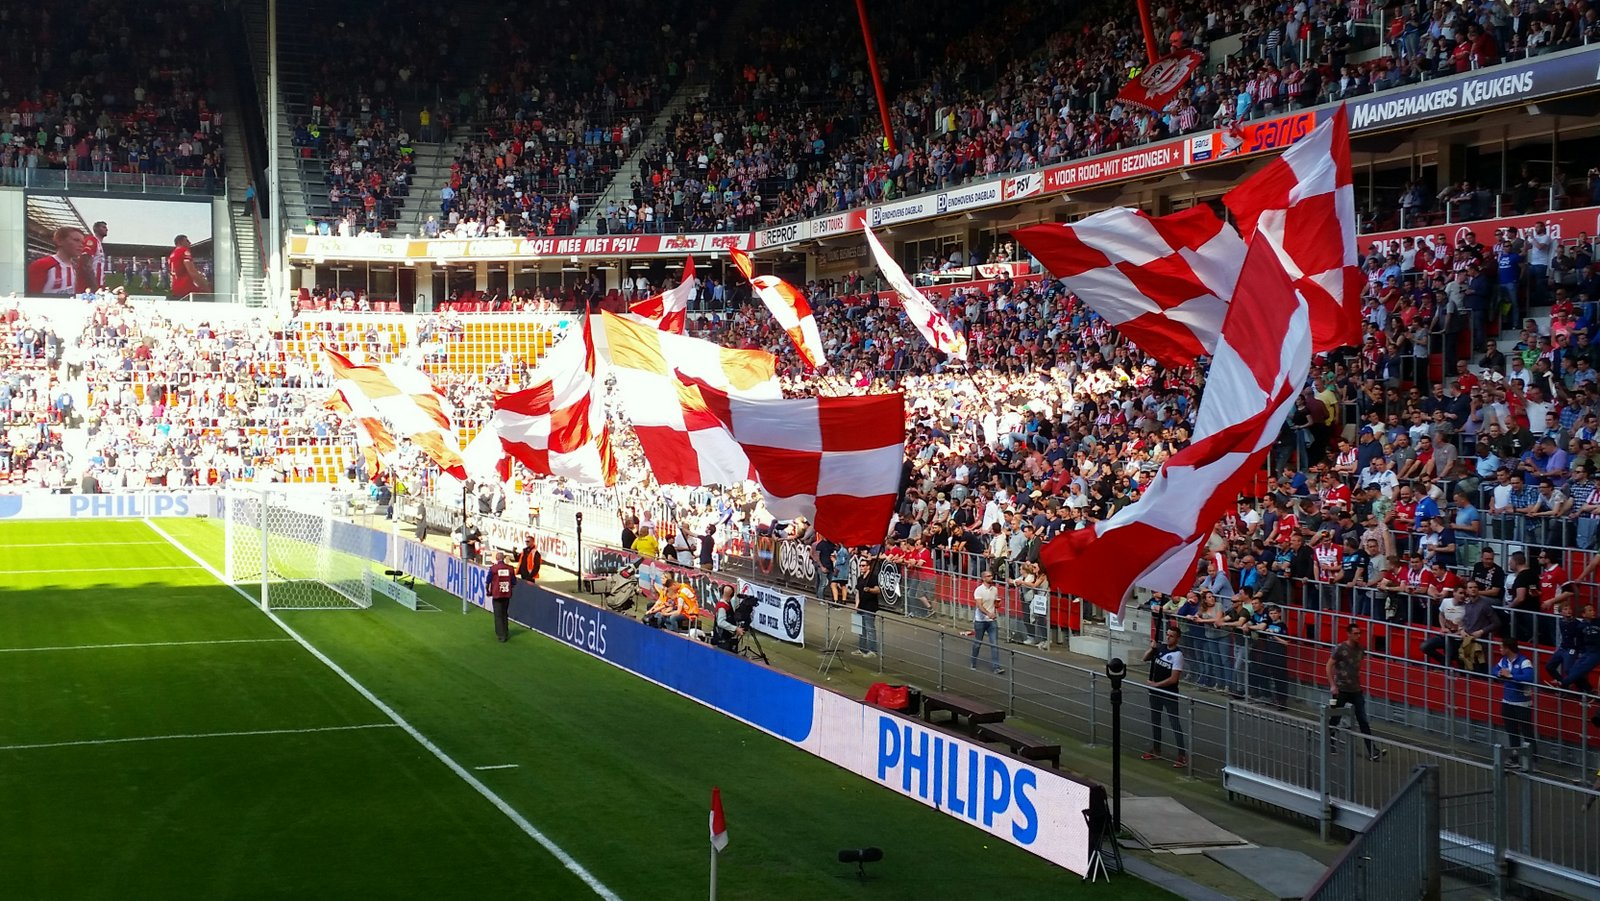 Vlaggen in Philips stadion bij PSV - Willem II